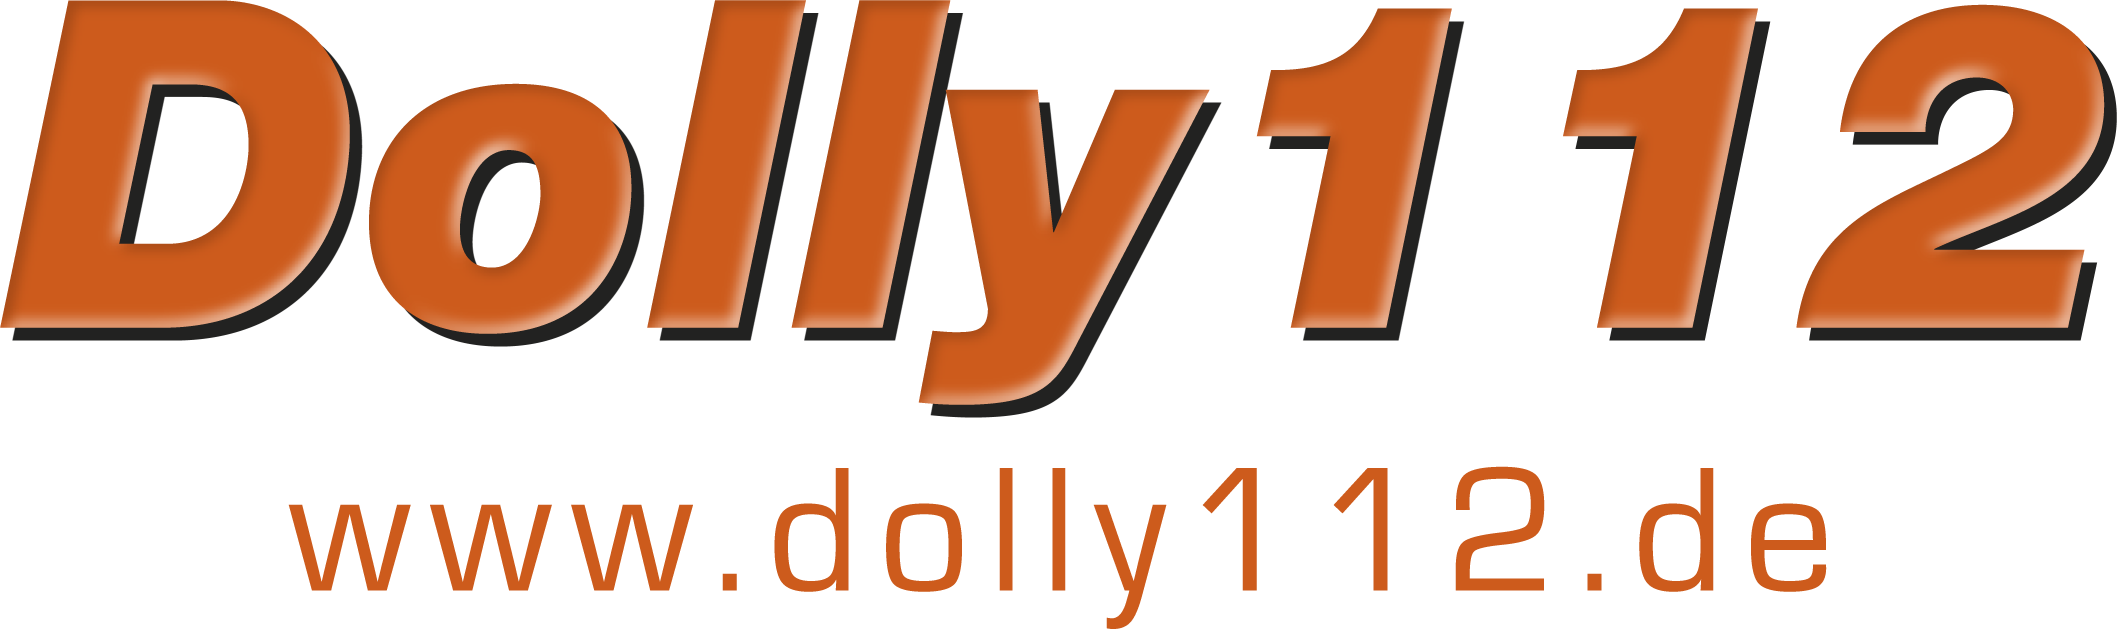 Dolly112_2014.png